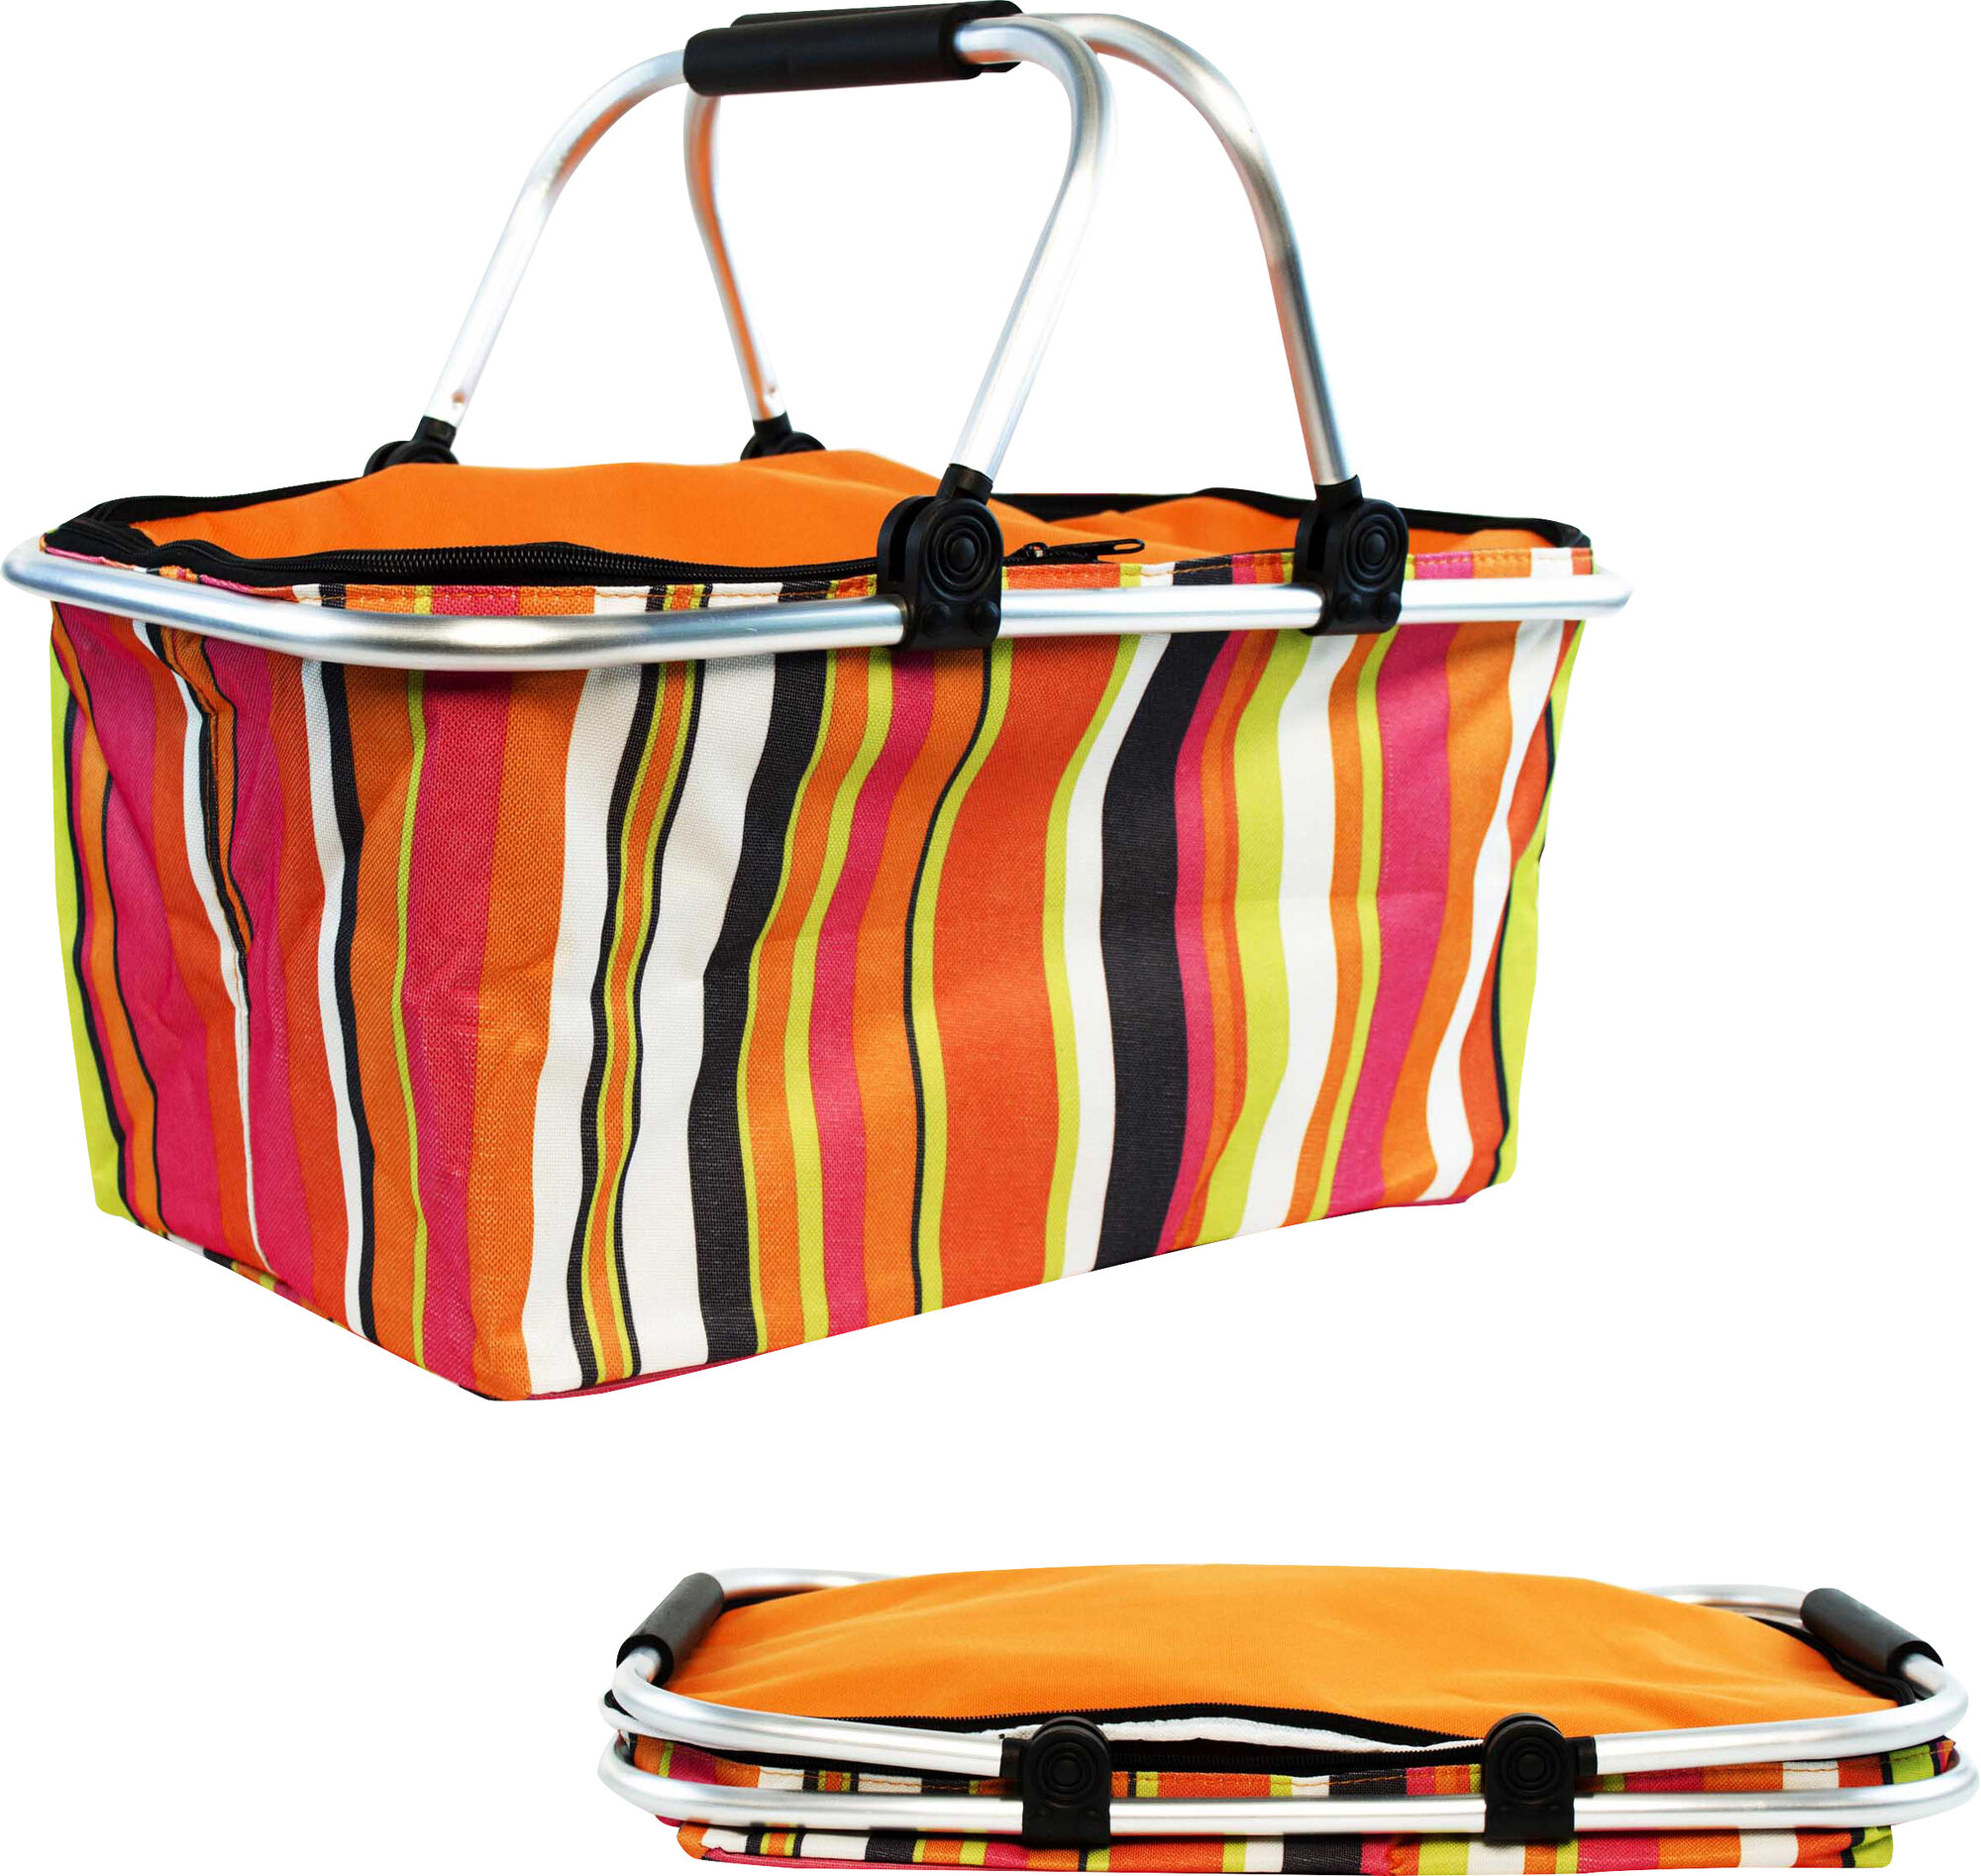 Collapsible Insulated Picnic Basket For 4 : Symple stuff insulated folding picnic basket